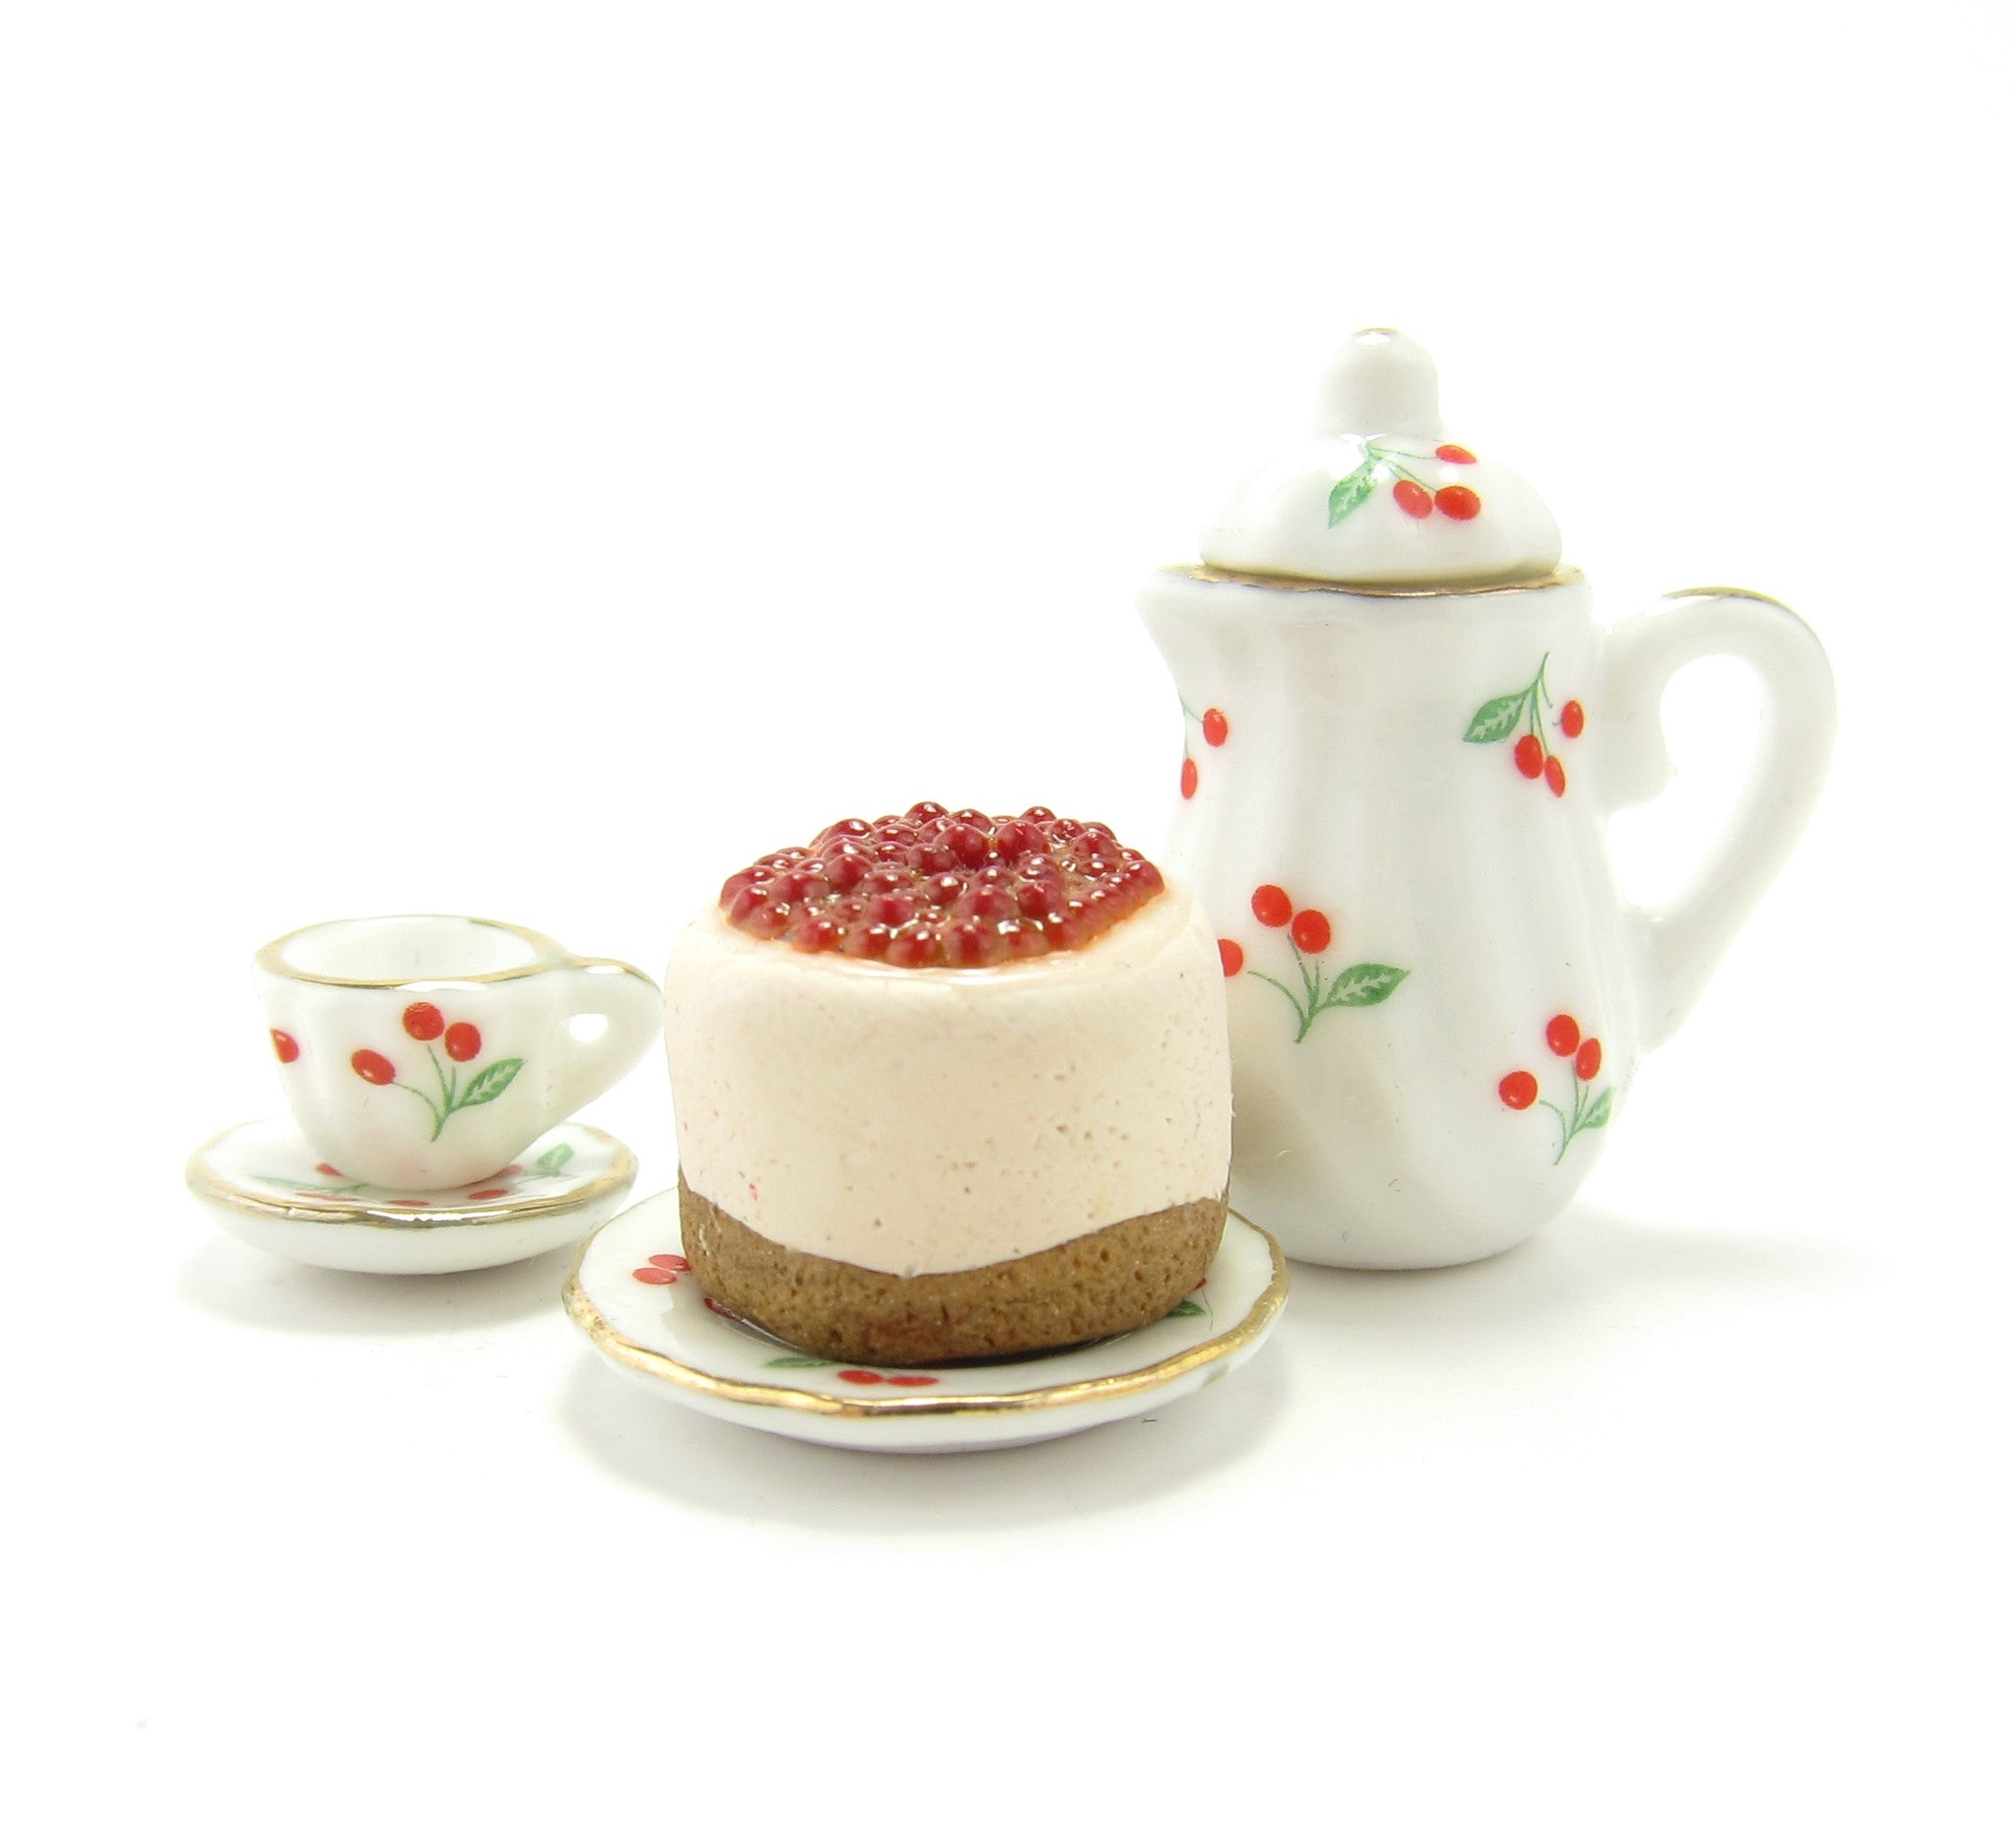 Miniature Cherry Cheesecake with Cherries Tea Set